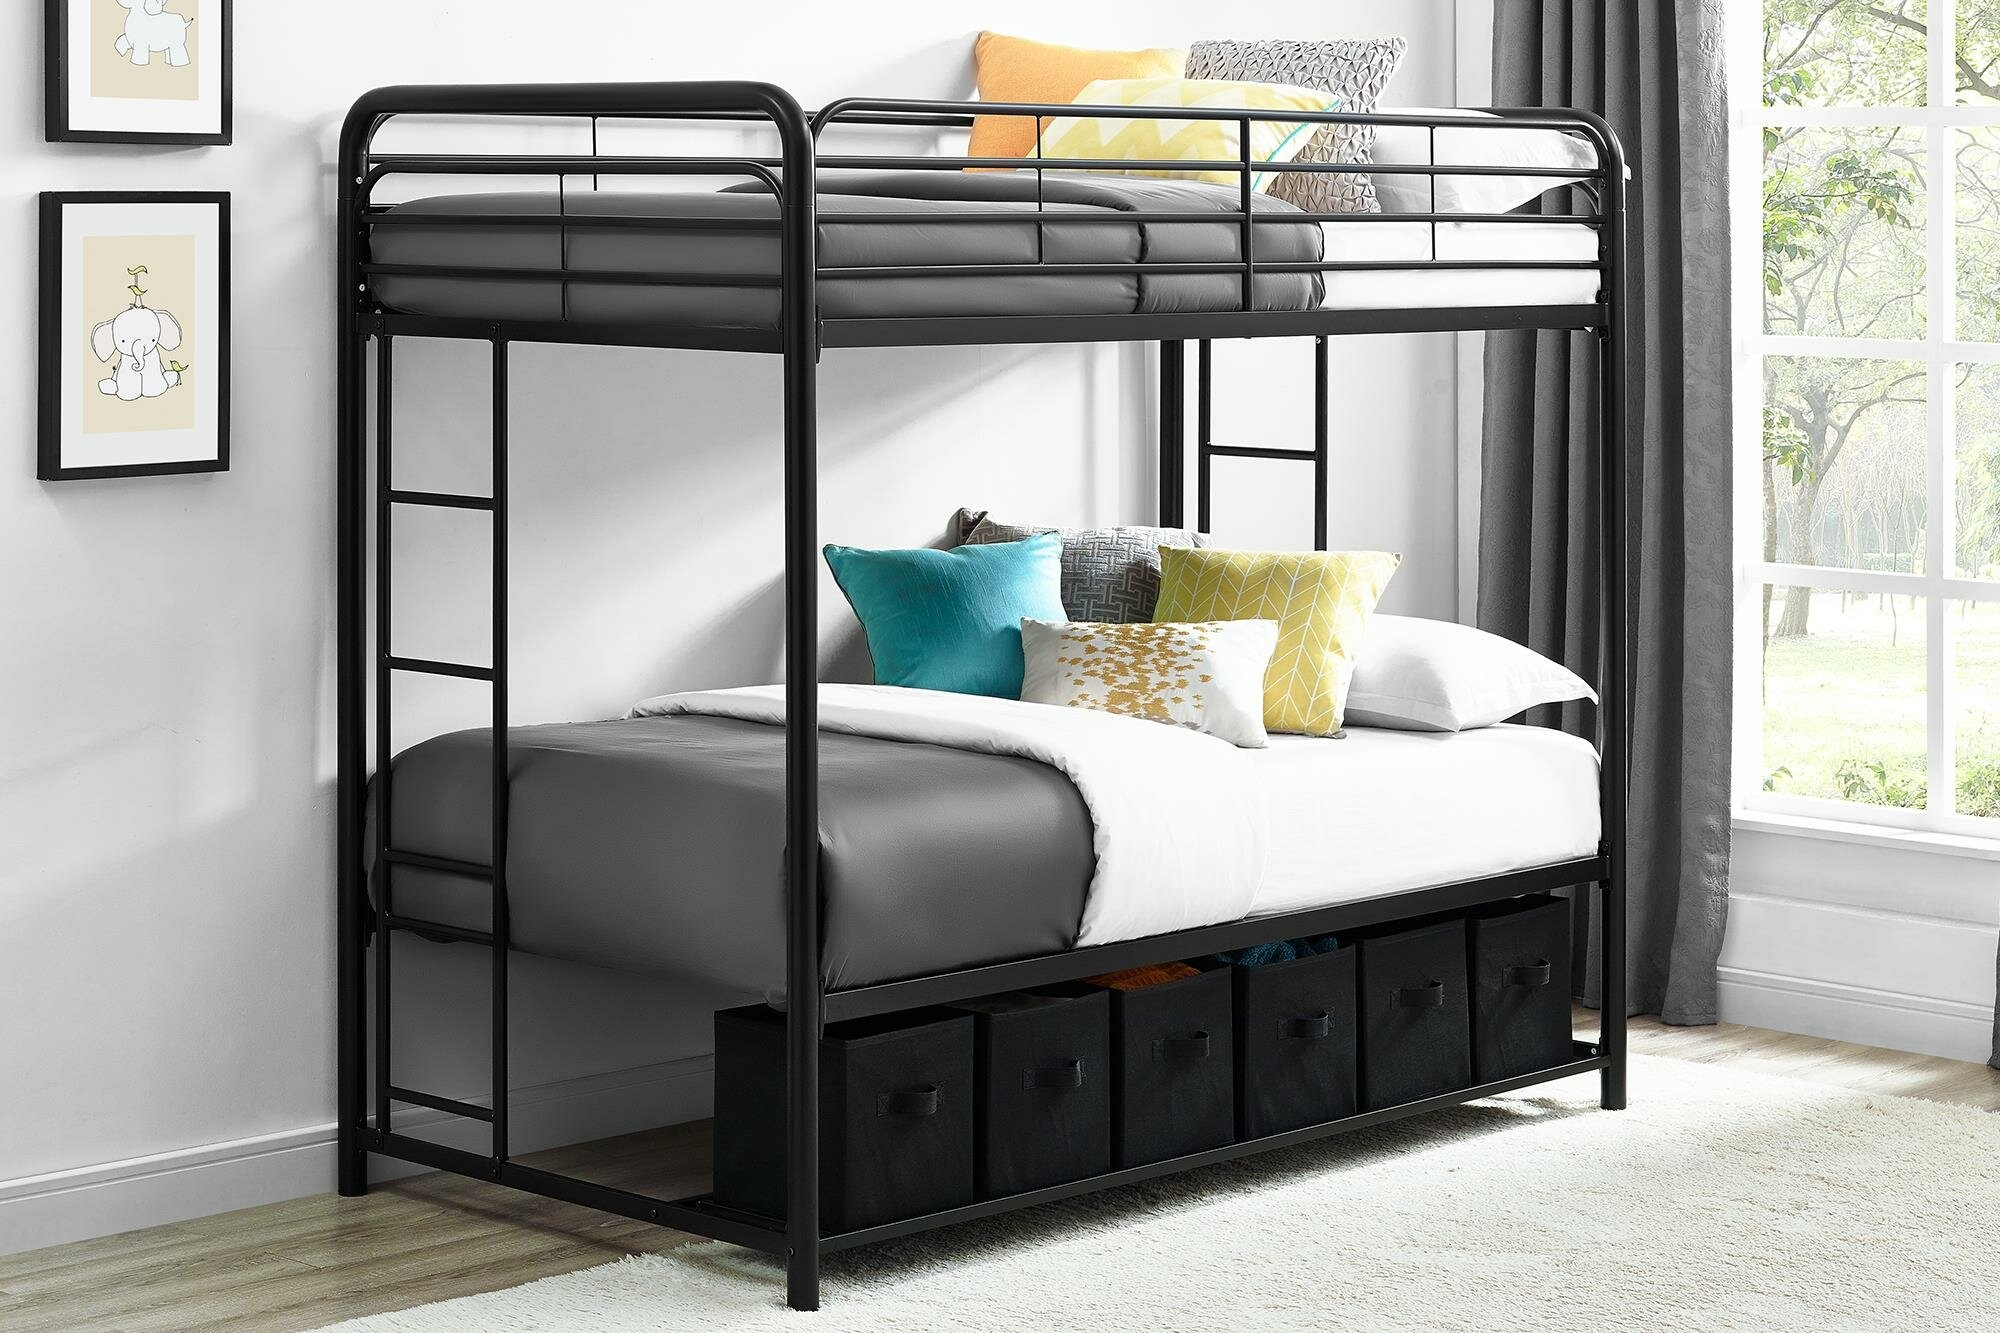 Heavy Duty Bunk Beds You Ll Love In 2020 Visualhunt